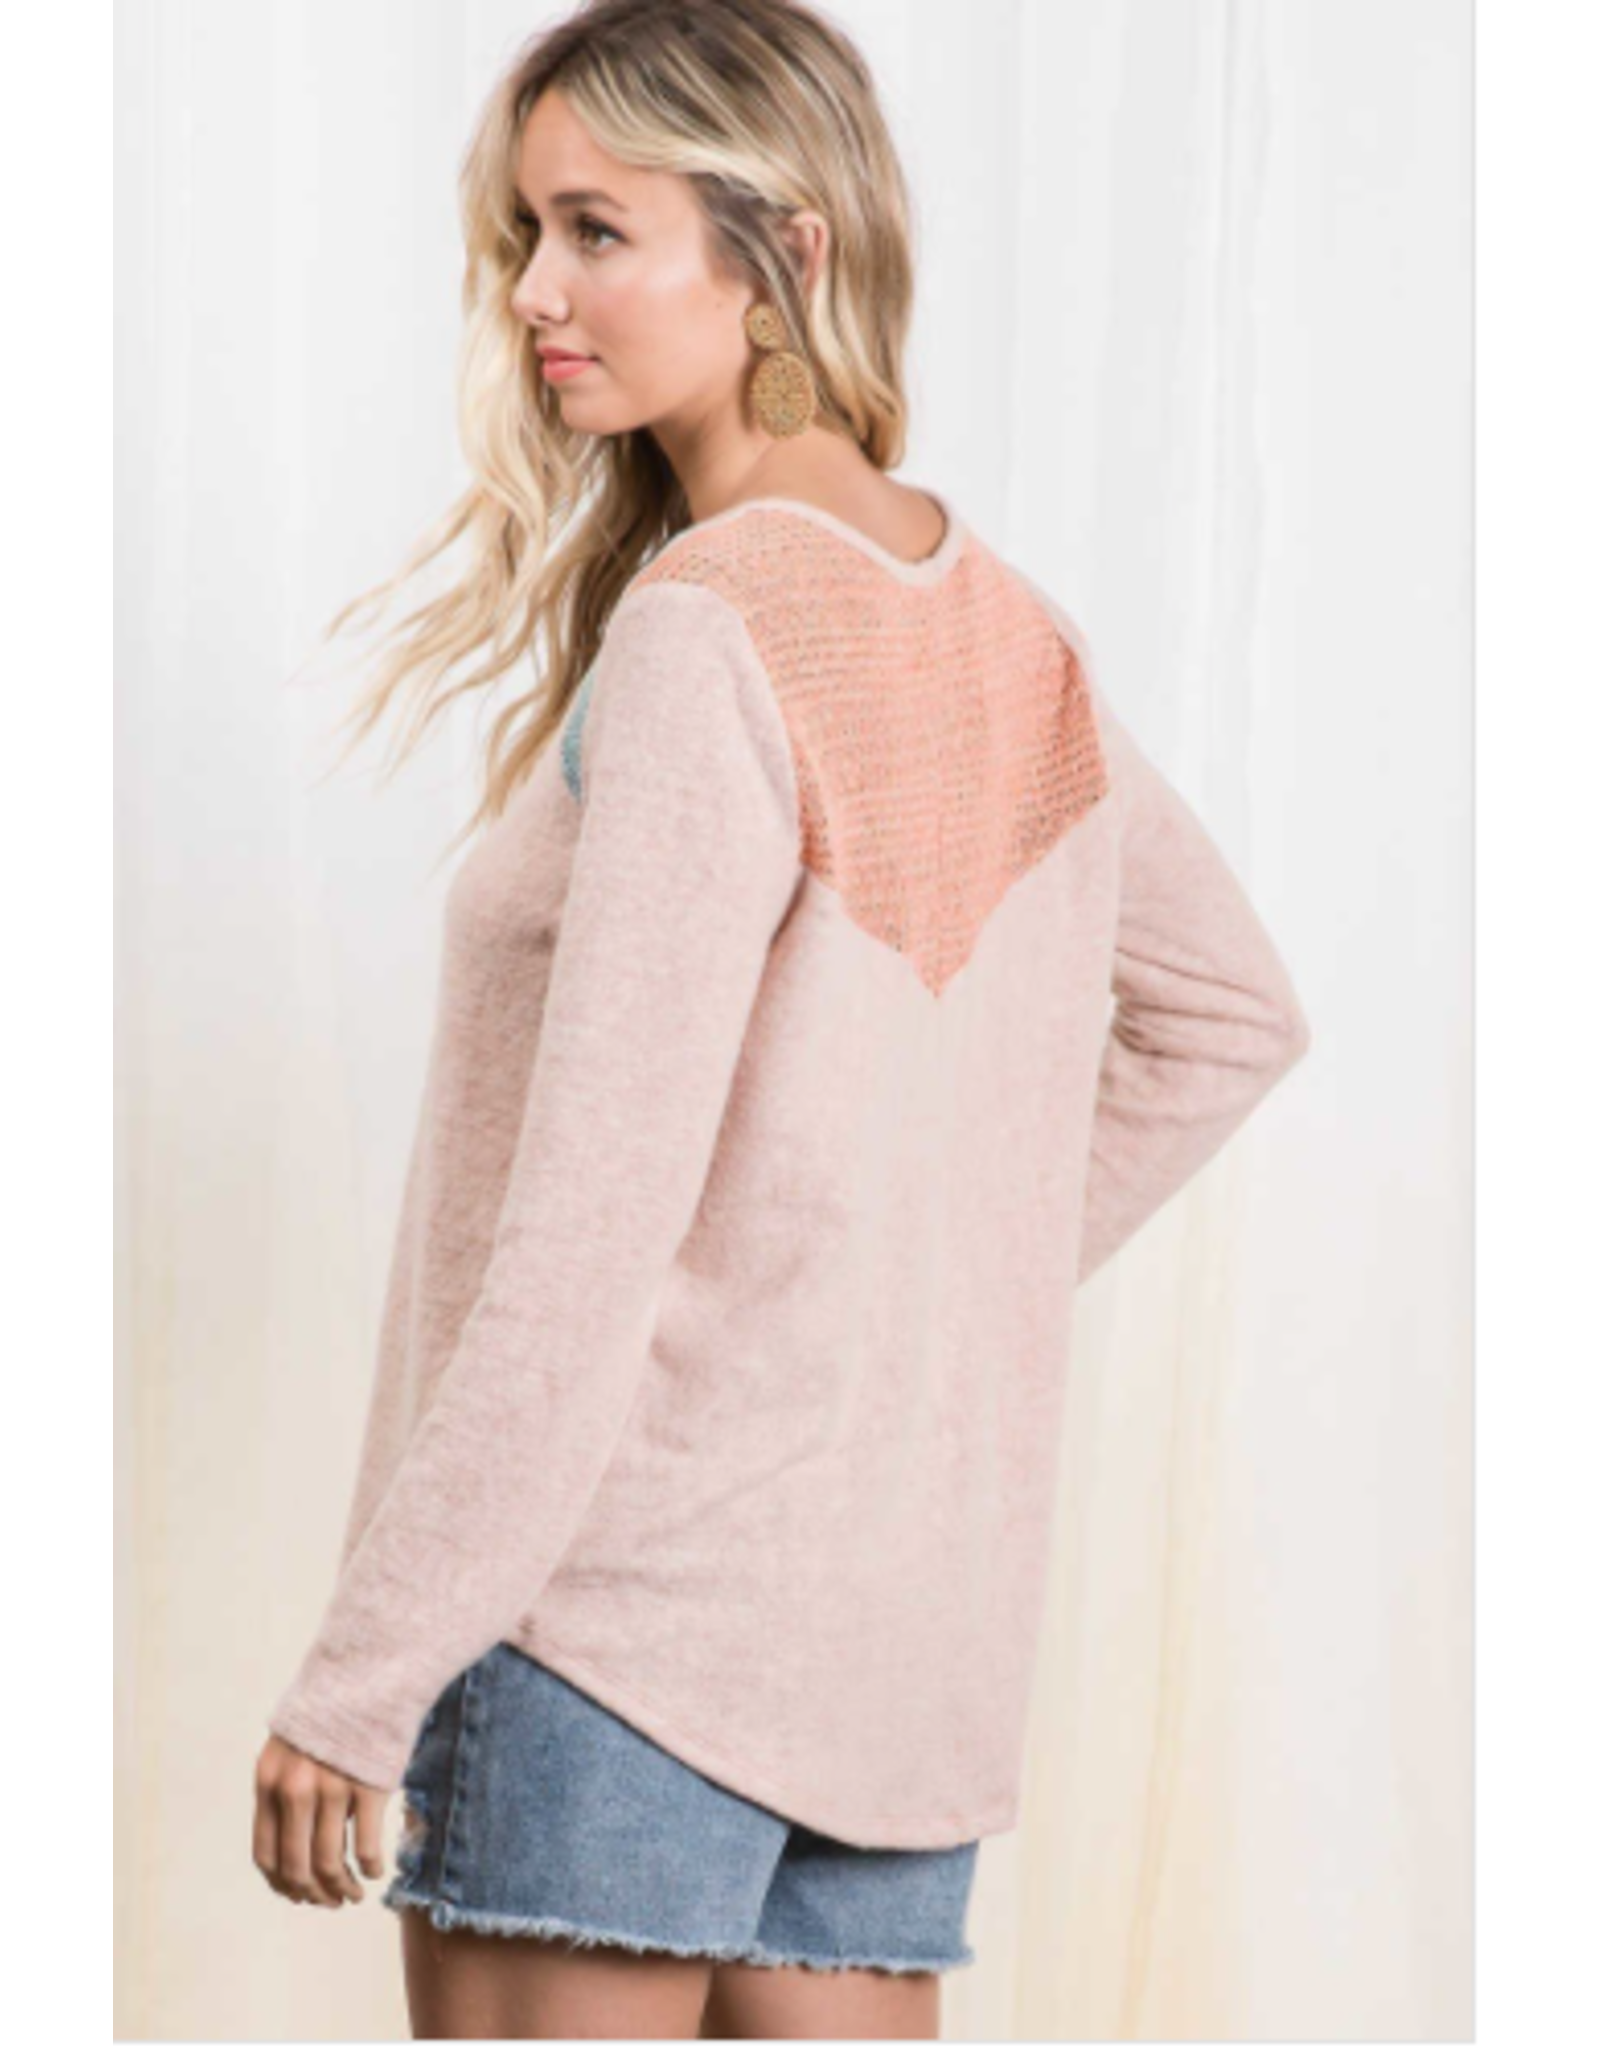 Wren - Brushed knit top with colour block shoulder detail (blush)